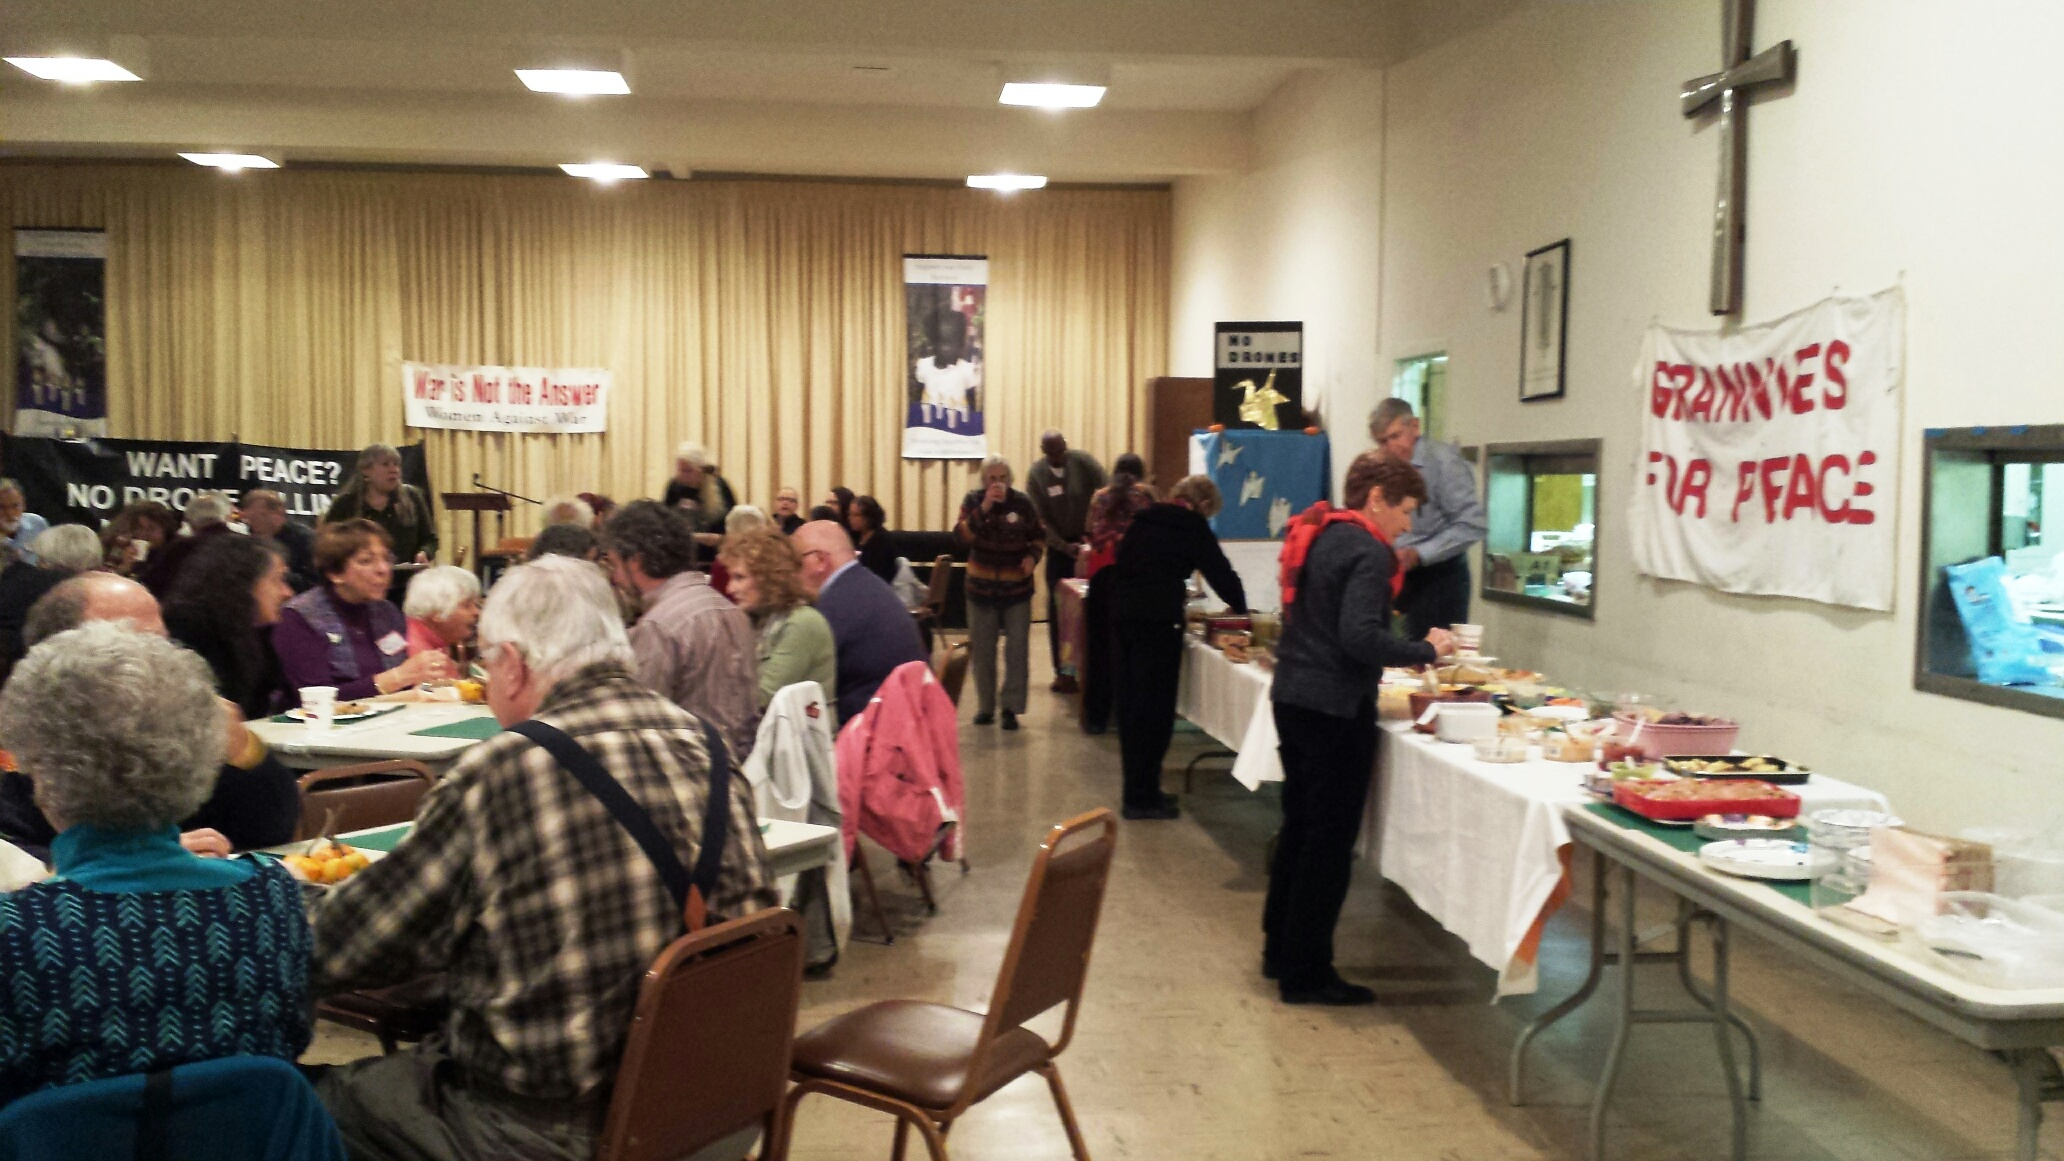 Sumptuous potluck and people enjoying it, photo by Priscilla Fairbank